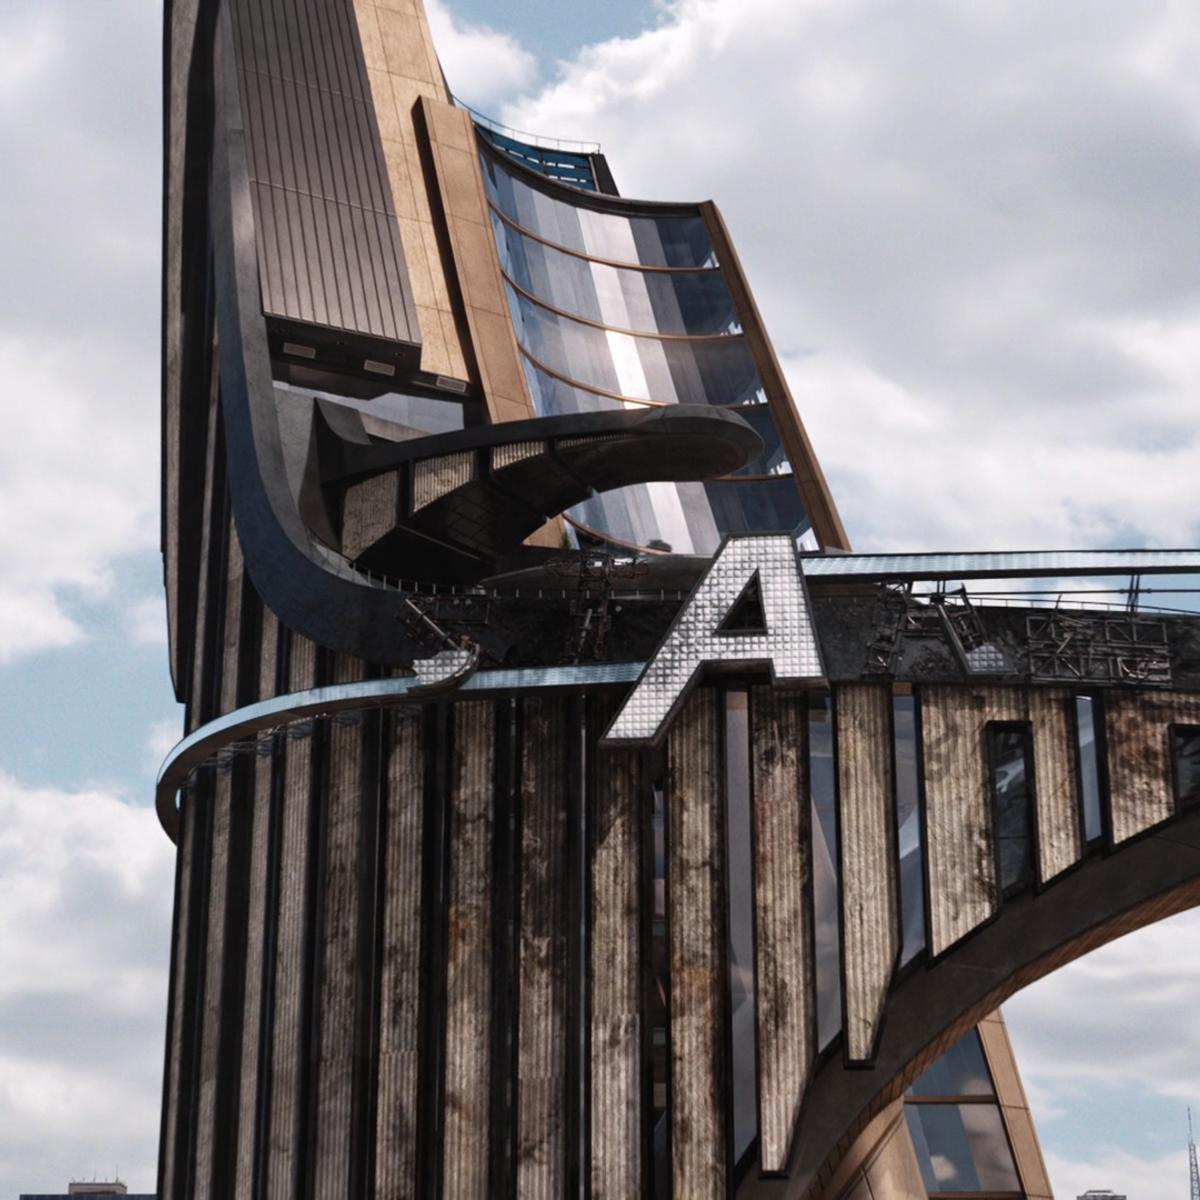 Avengers_tower.png